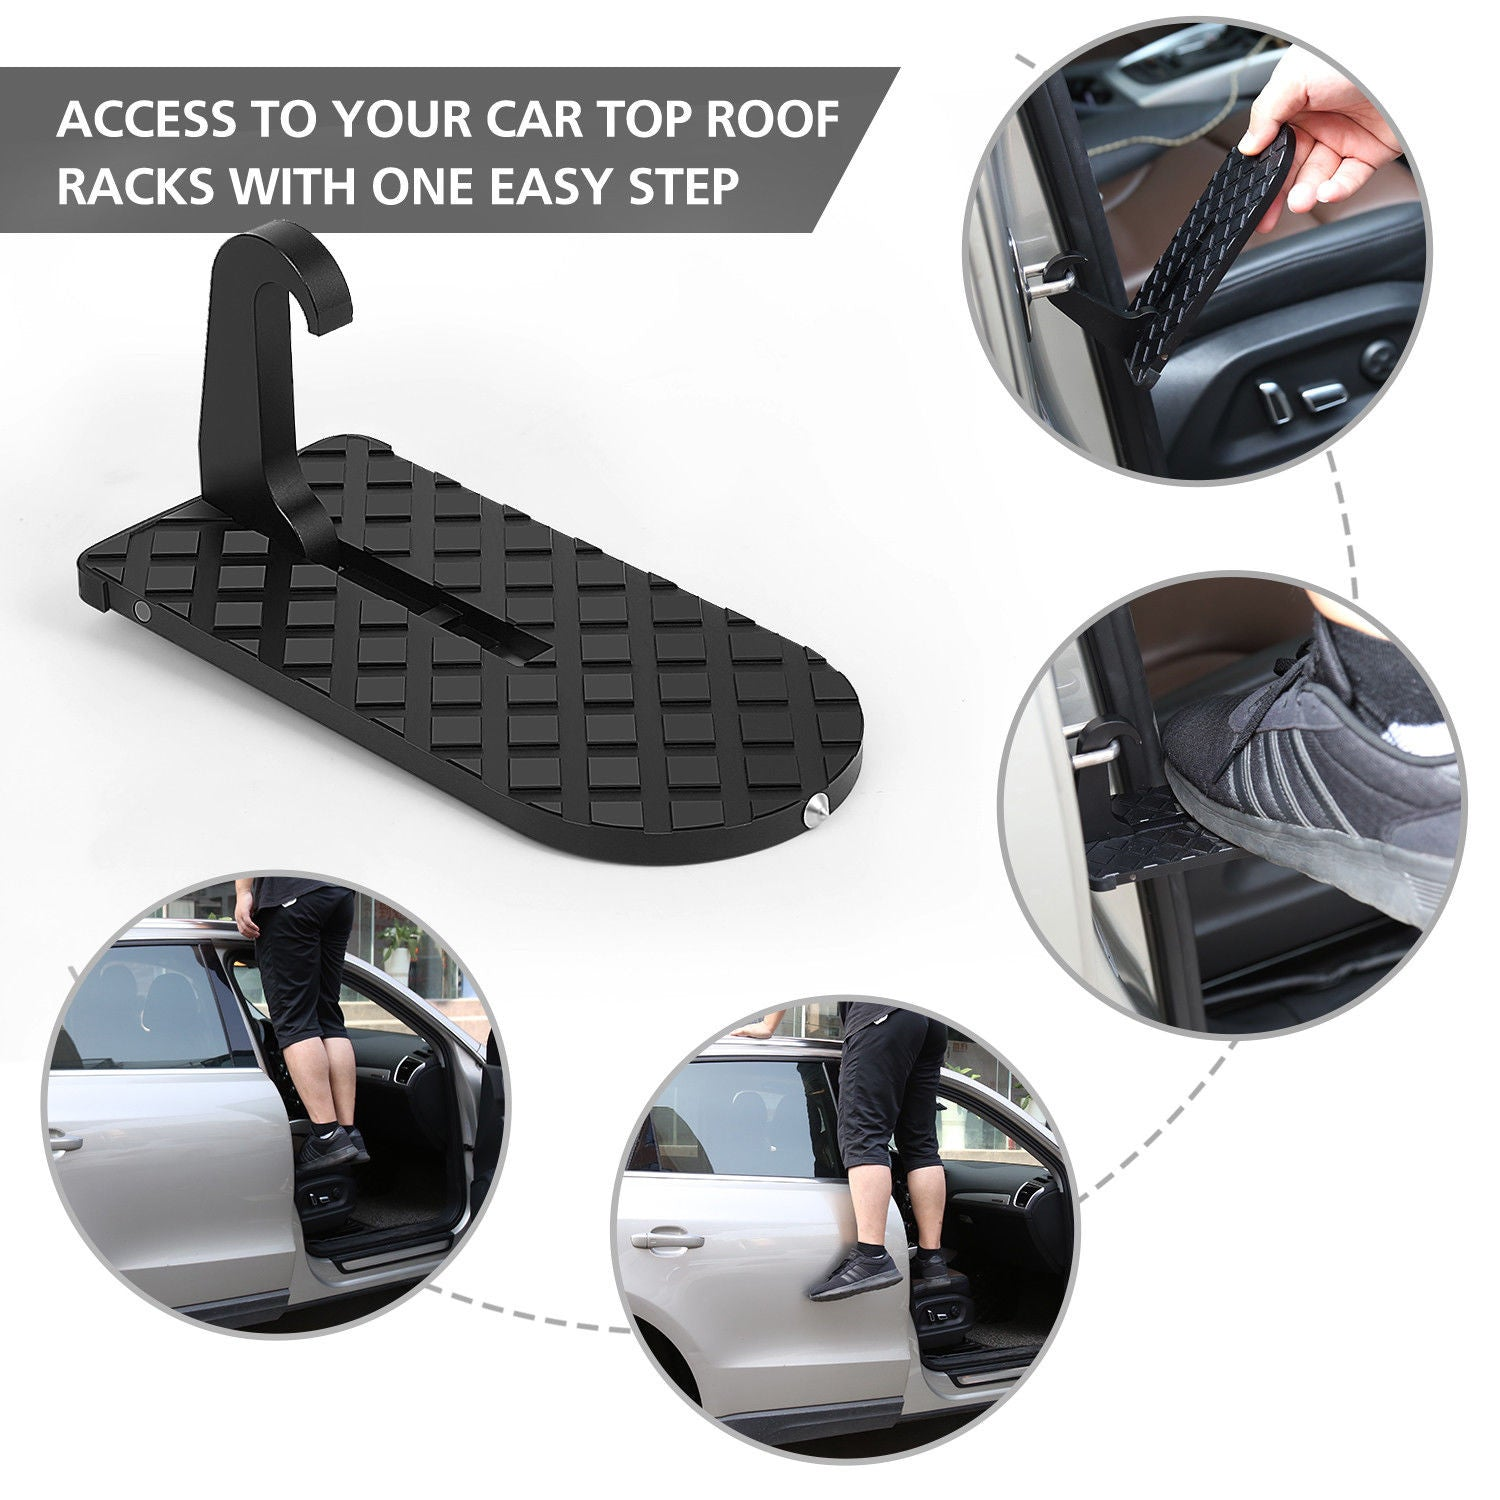 Rooftop Doorstep Vehicle Step Easily To Access Roof Of Car